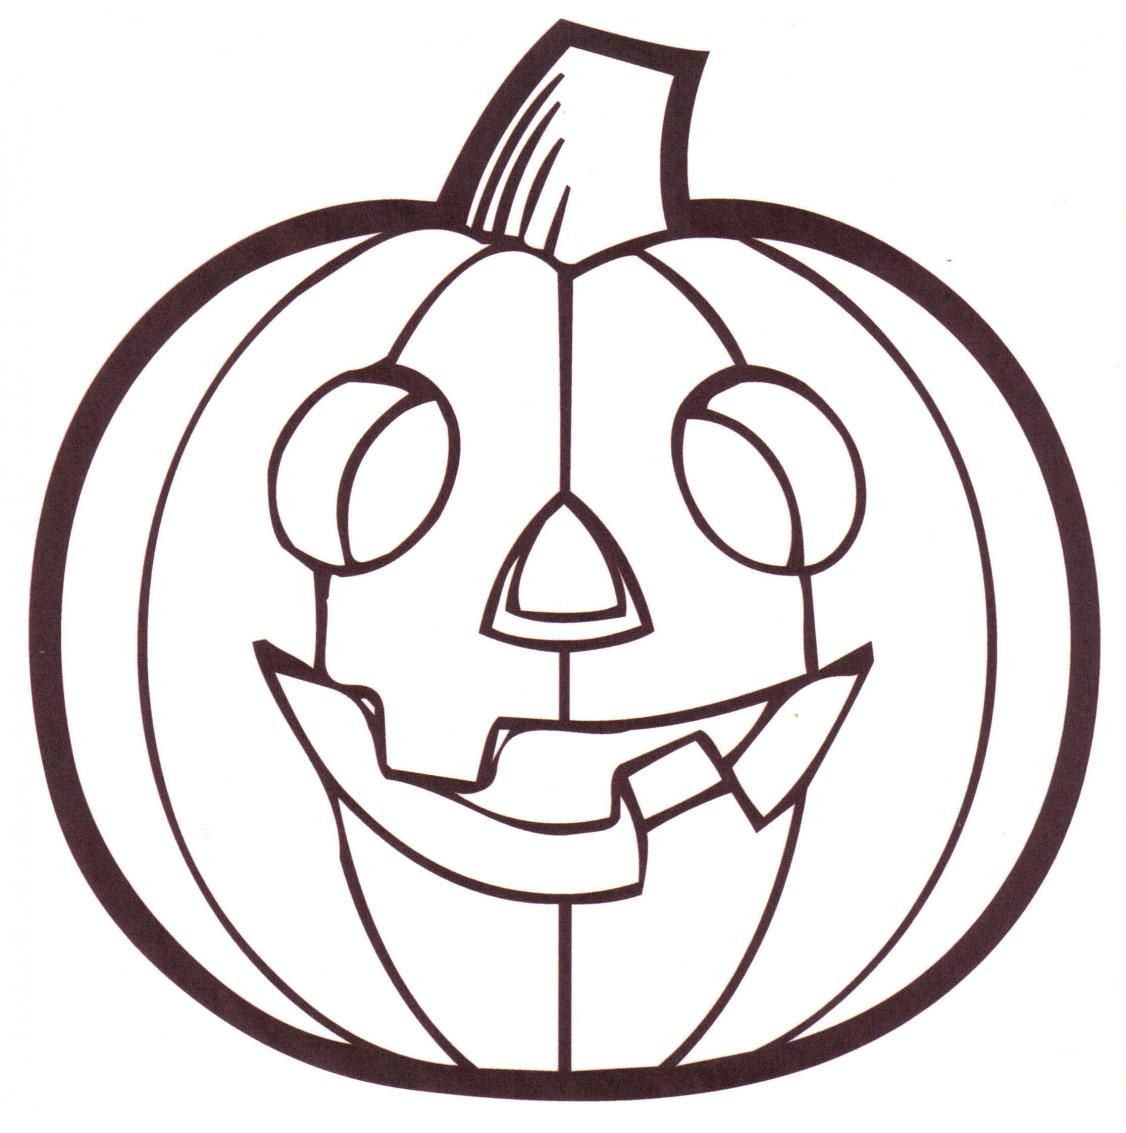 Halloween pumpkin coloring pages free online printable coloring pages sheets for kids get the latest free halloween pumpkin coloring pages images